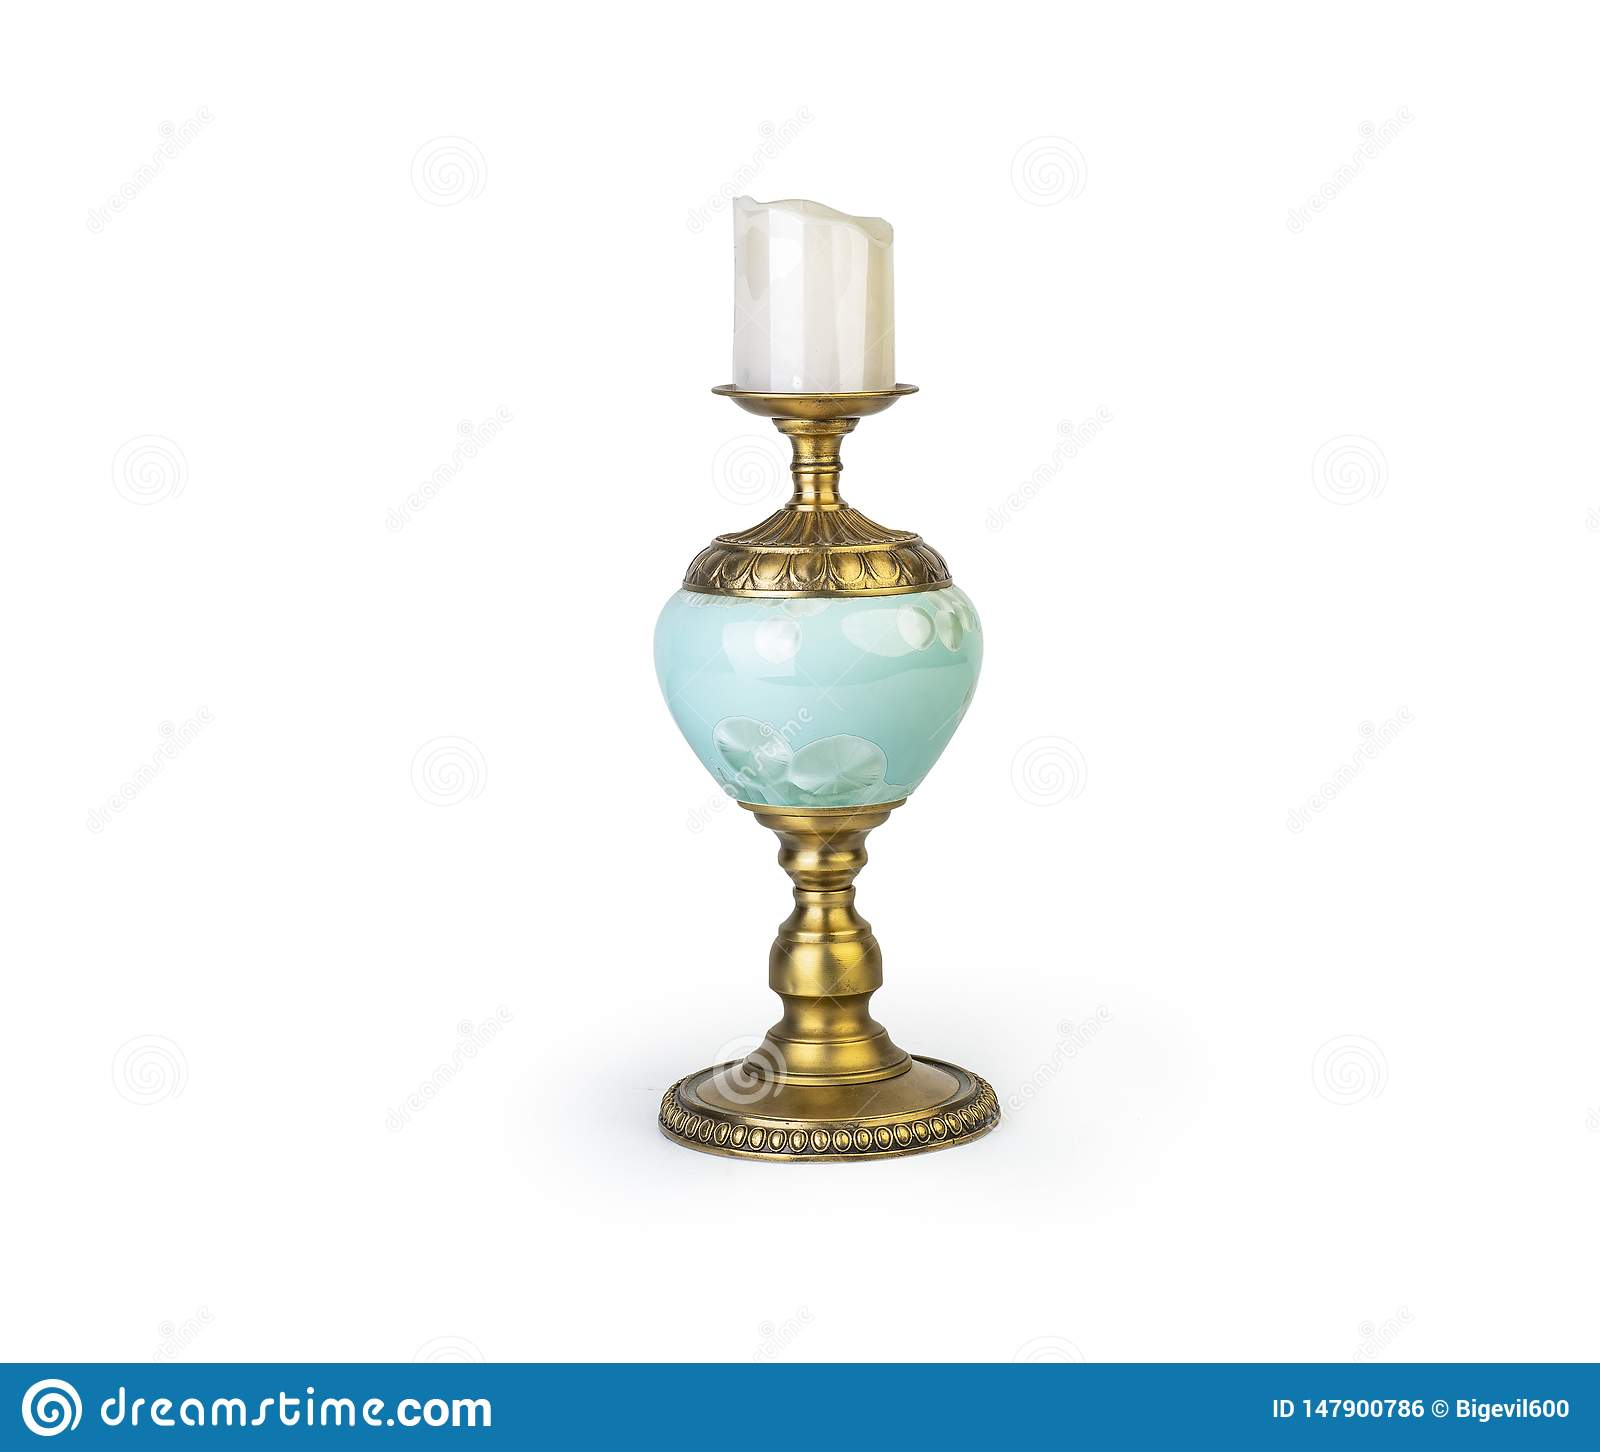 Candle in Golden candlestick, Classic Candleholder isolated on white